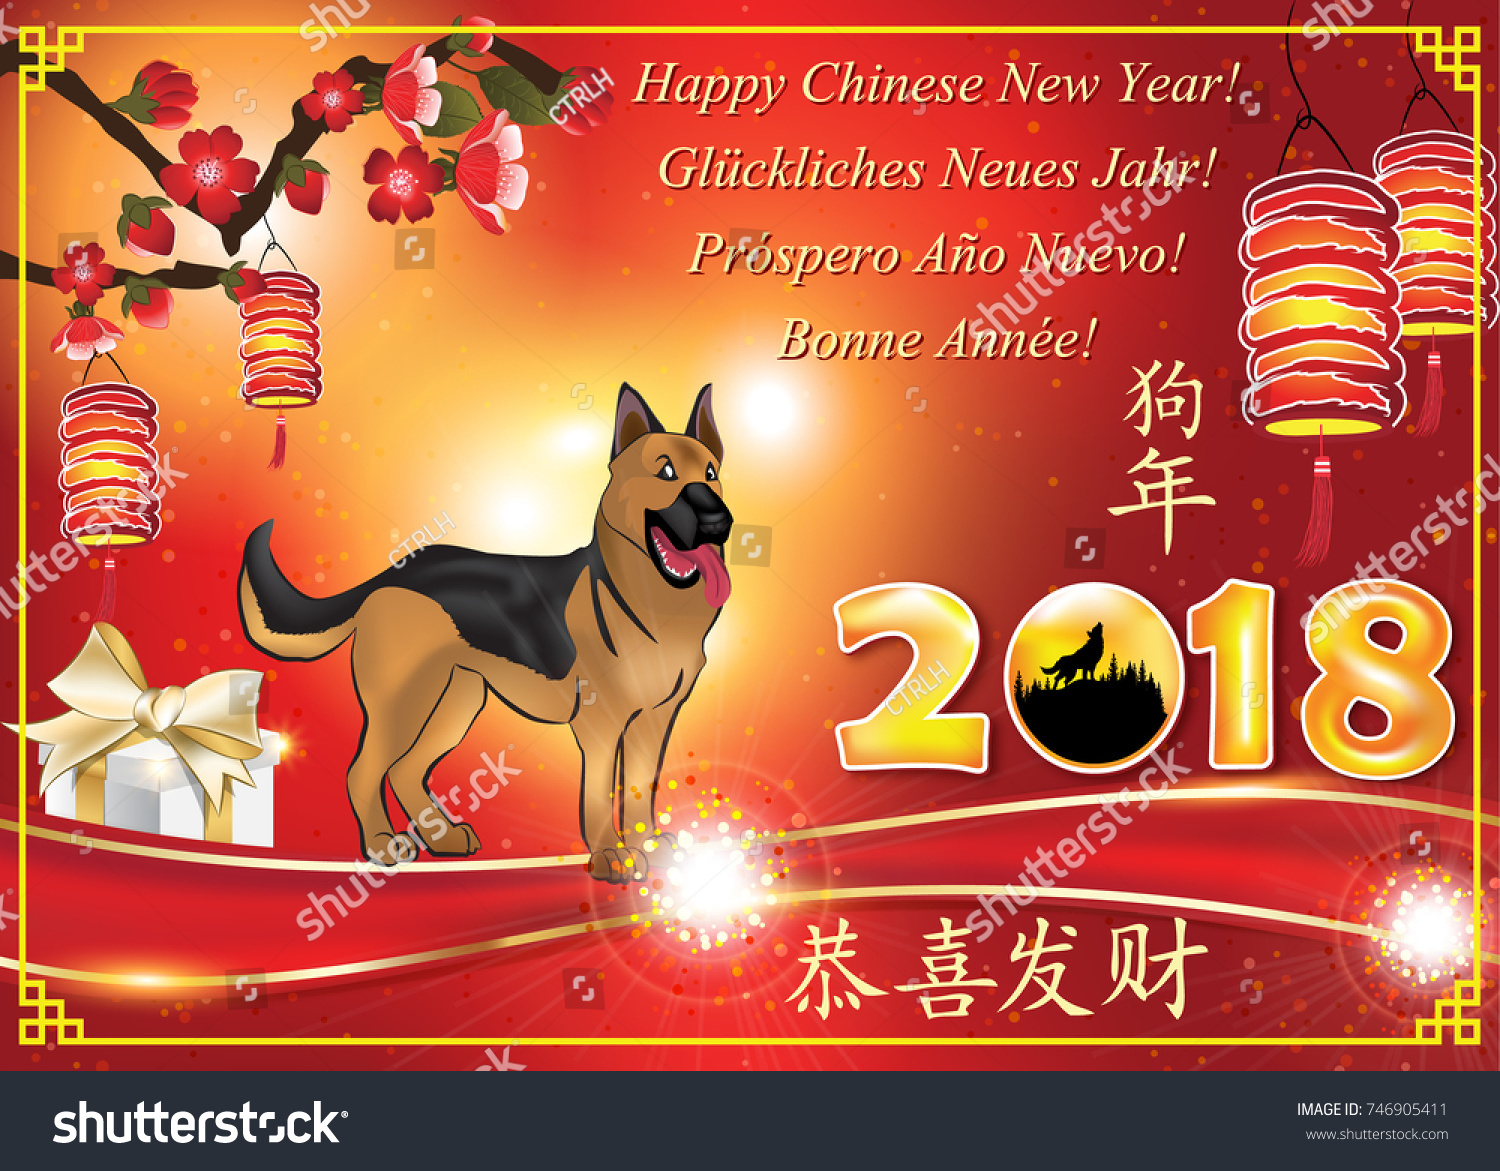 Happy Chinese New Year Greeting Card Stock Illustration 746905411